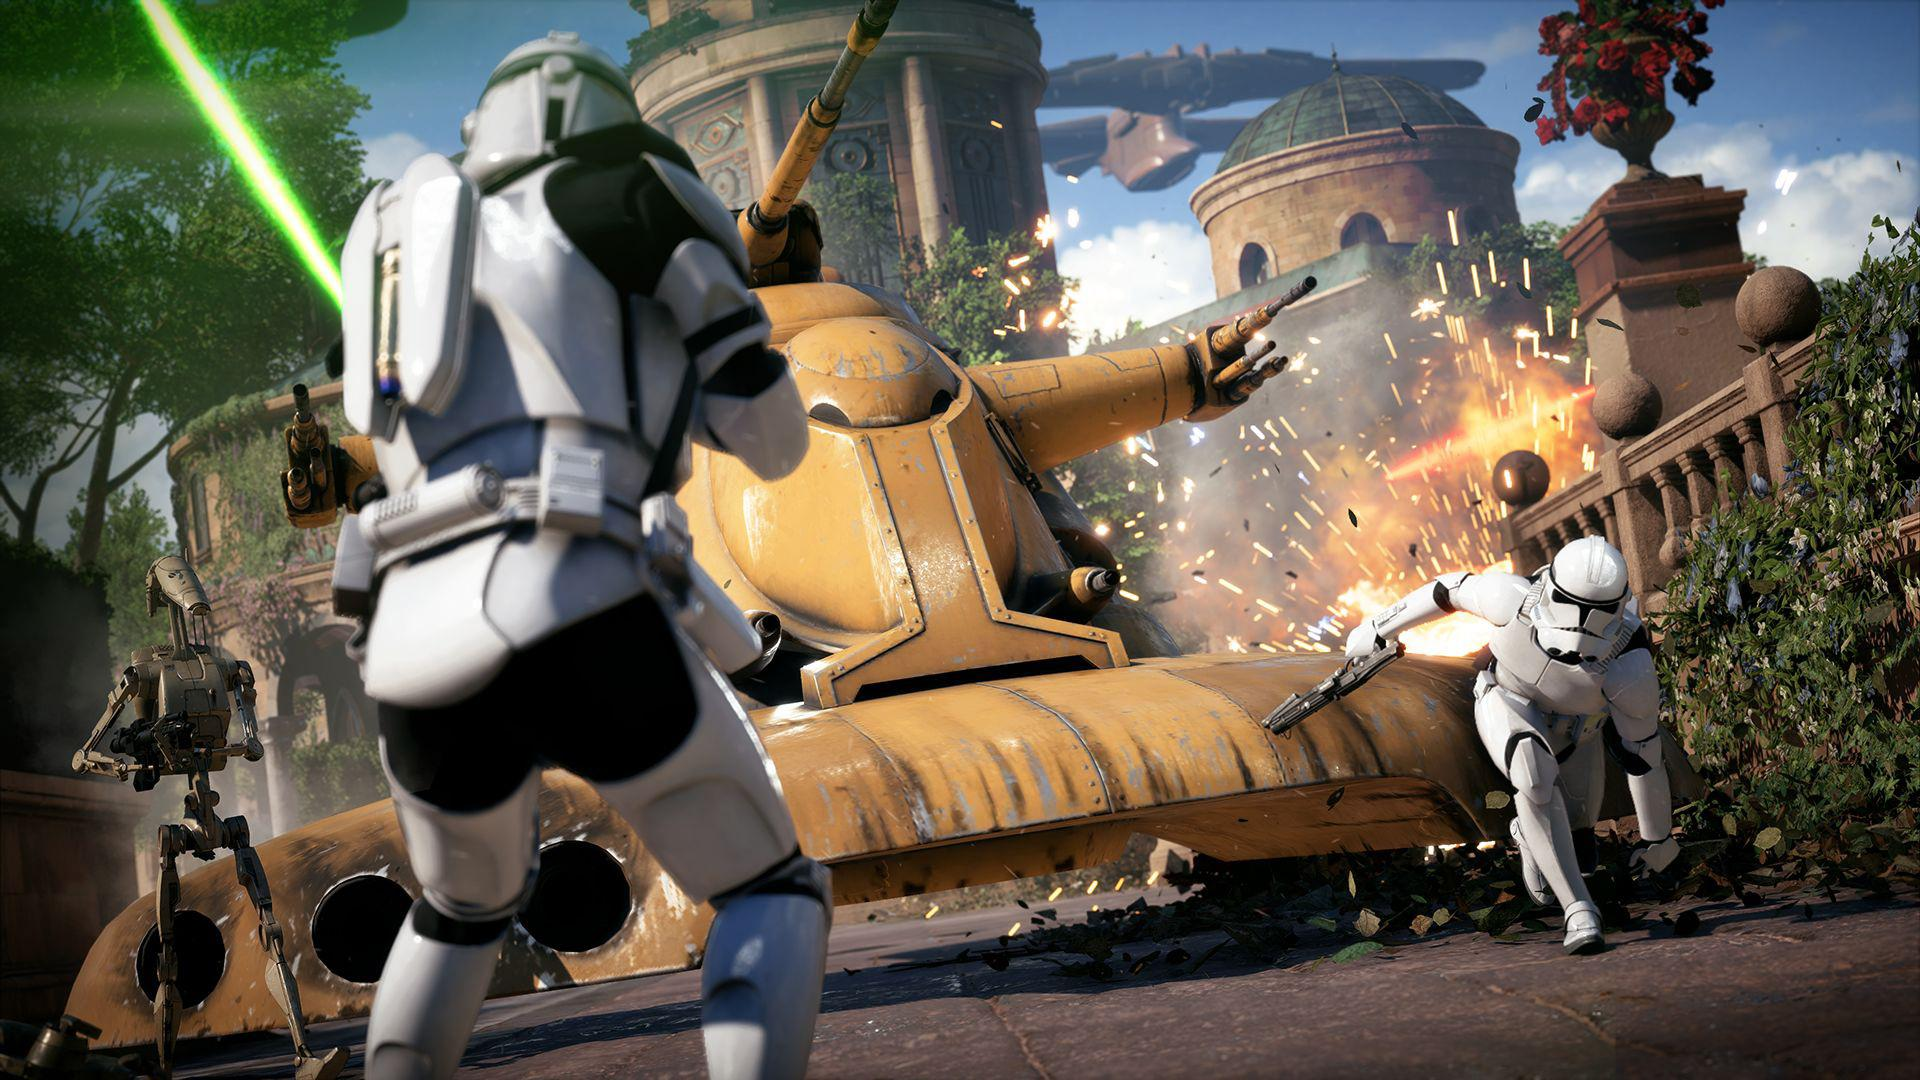 Star Wars: Battlefront II is another title that will make the most out of the X's improved power